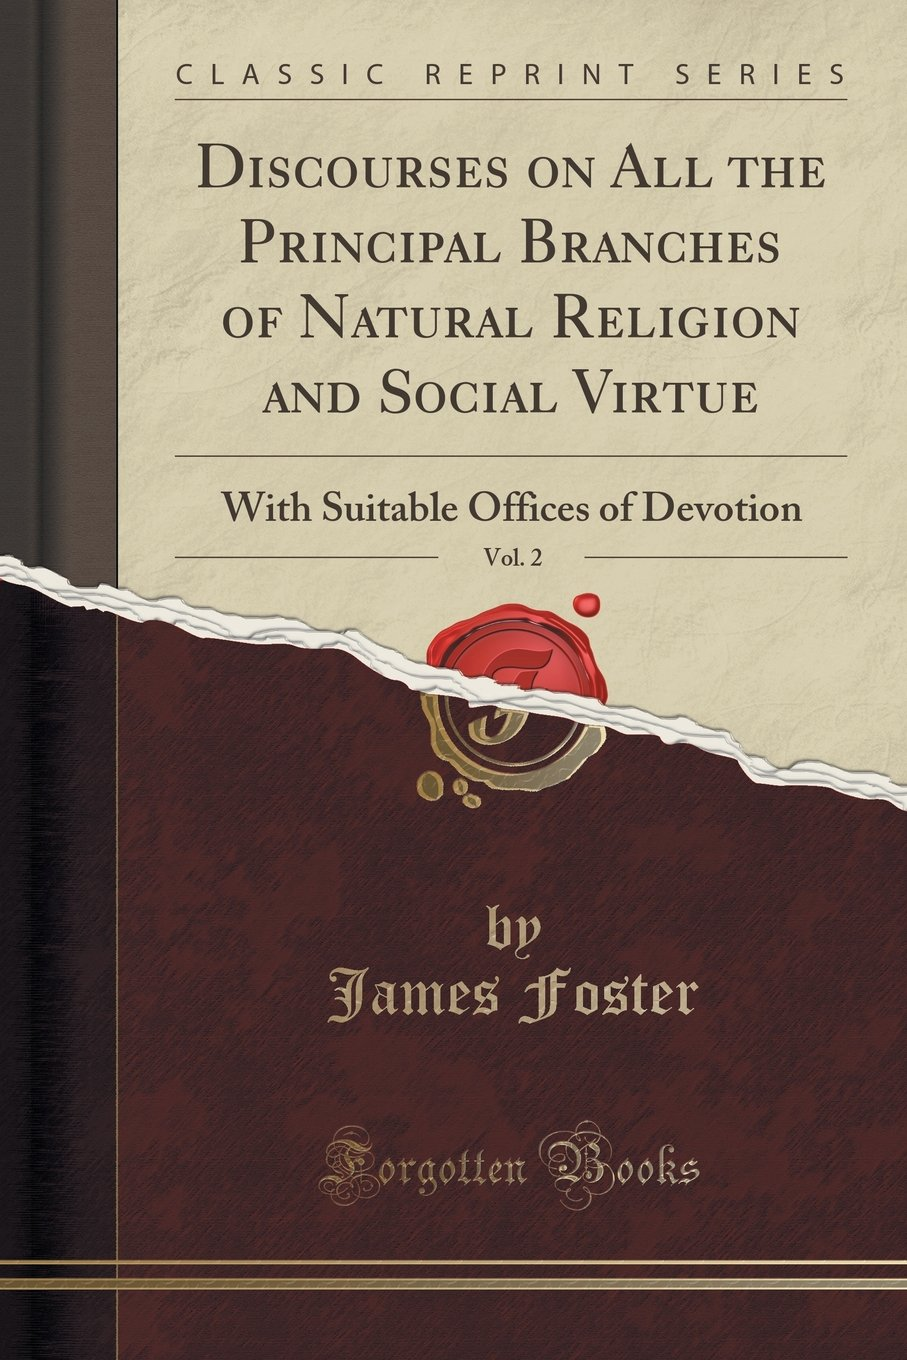 Discourses on All the Principal Branches of Natural Religion and Social Virtue, Vol. 2: With Suitable Offices of Devotion (Classic Reprint) pdf